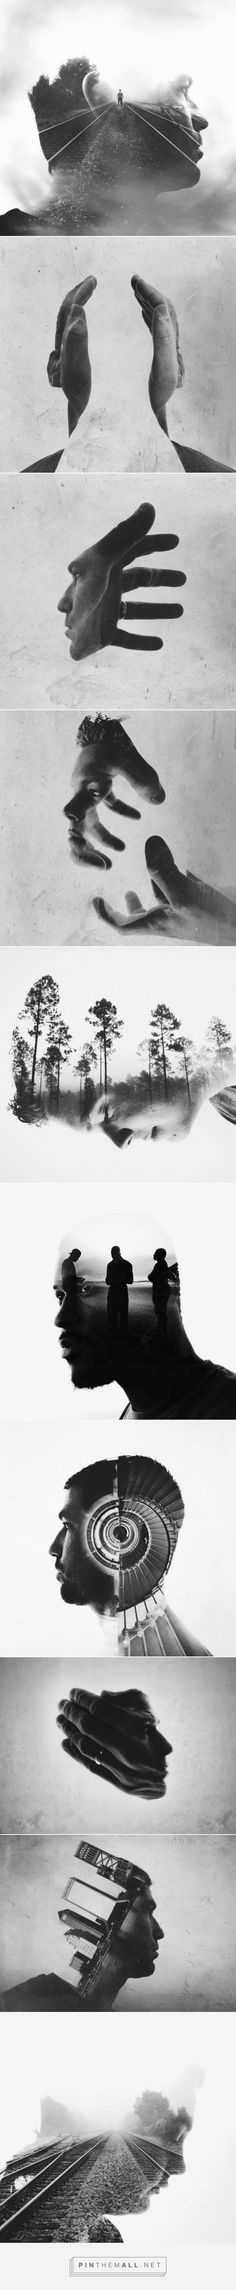 In this series, I like the use of double exposure mixed with black and white pictures. The images seem wispy and mysterious. Photo Collage Photoshop, Creative Photoshop, Photoshop Images, Cool Photoshop, Photoshop Design, Photoshop Tips, Effects Photoshop, Montage Photography, Photography Series